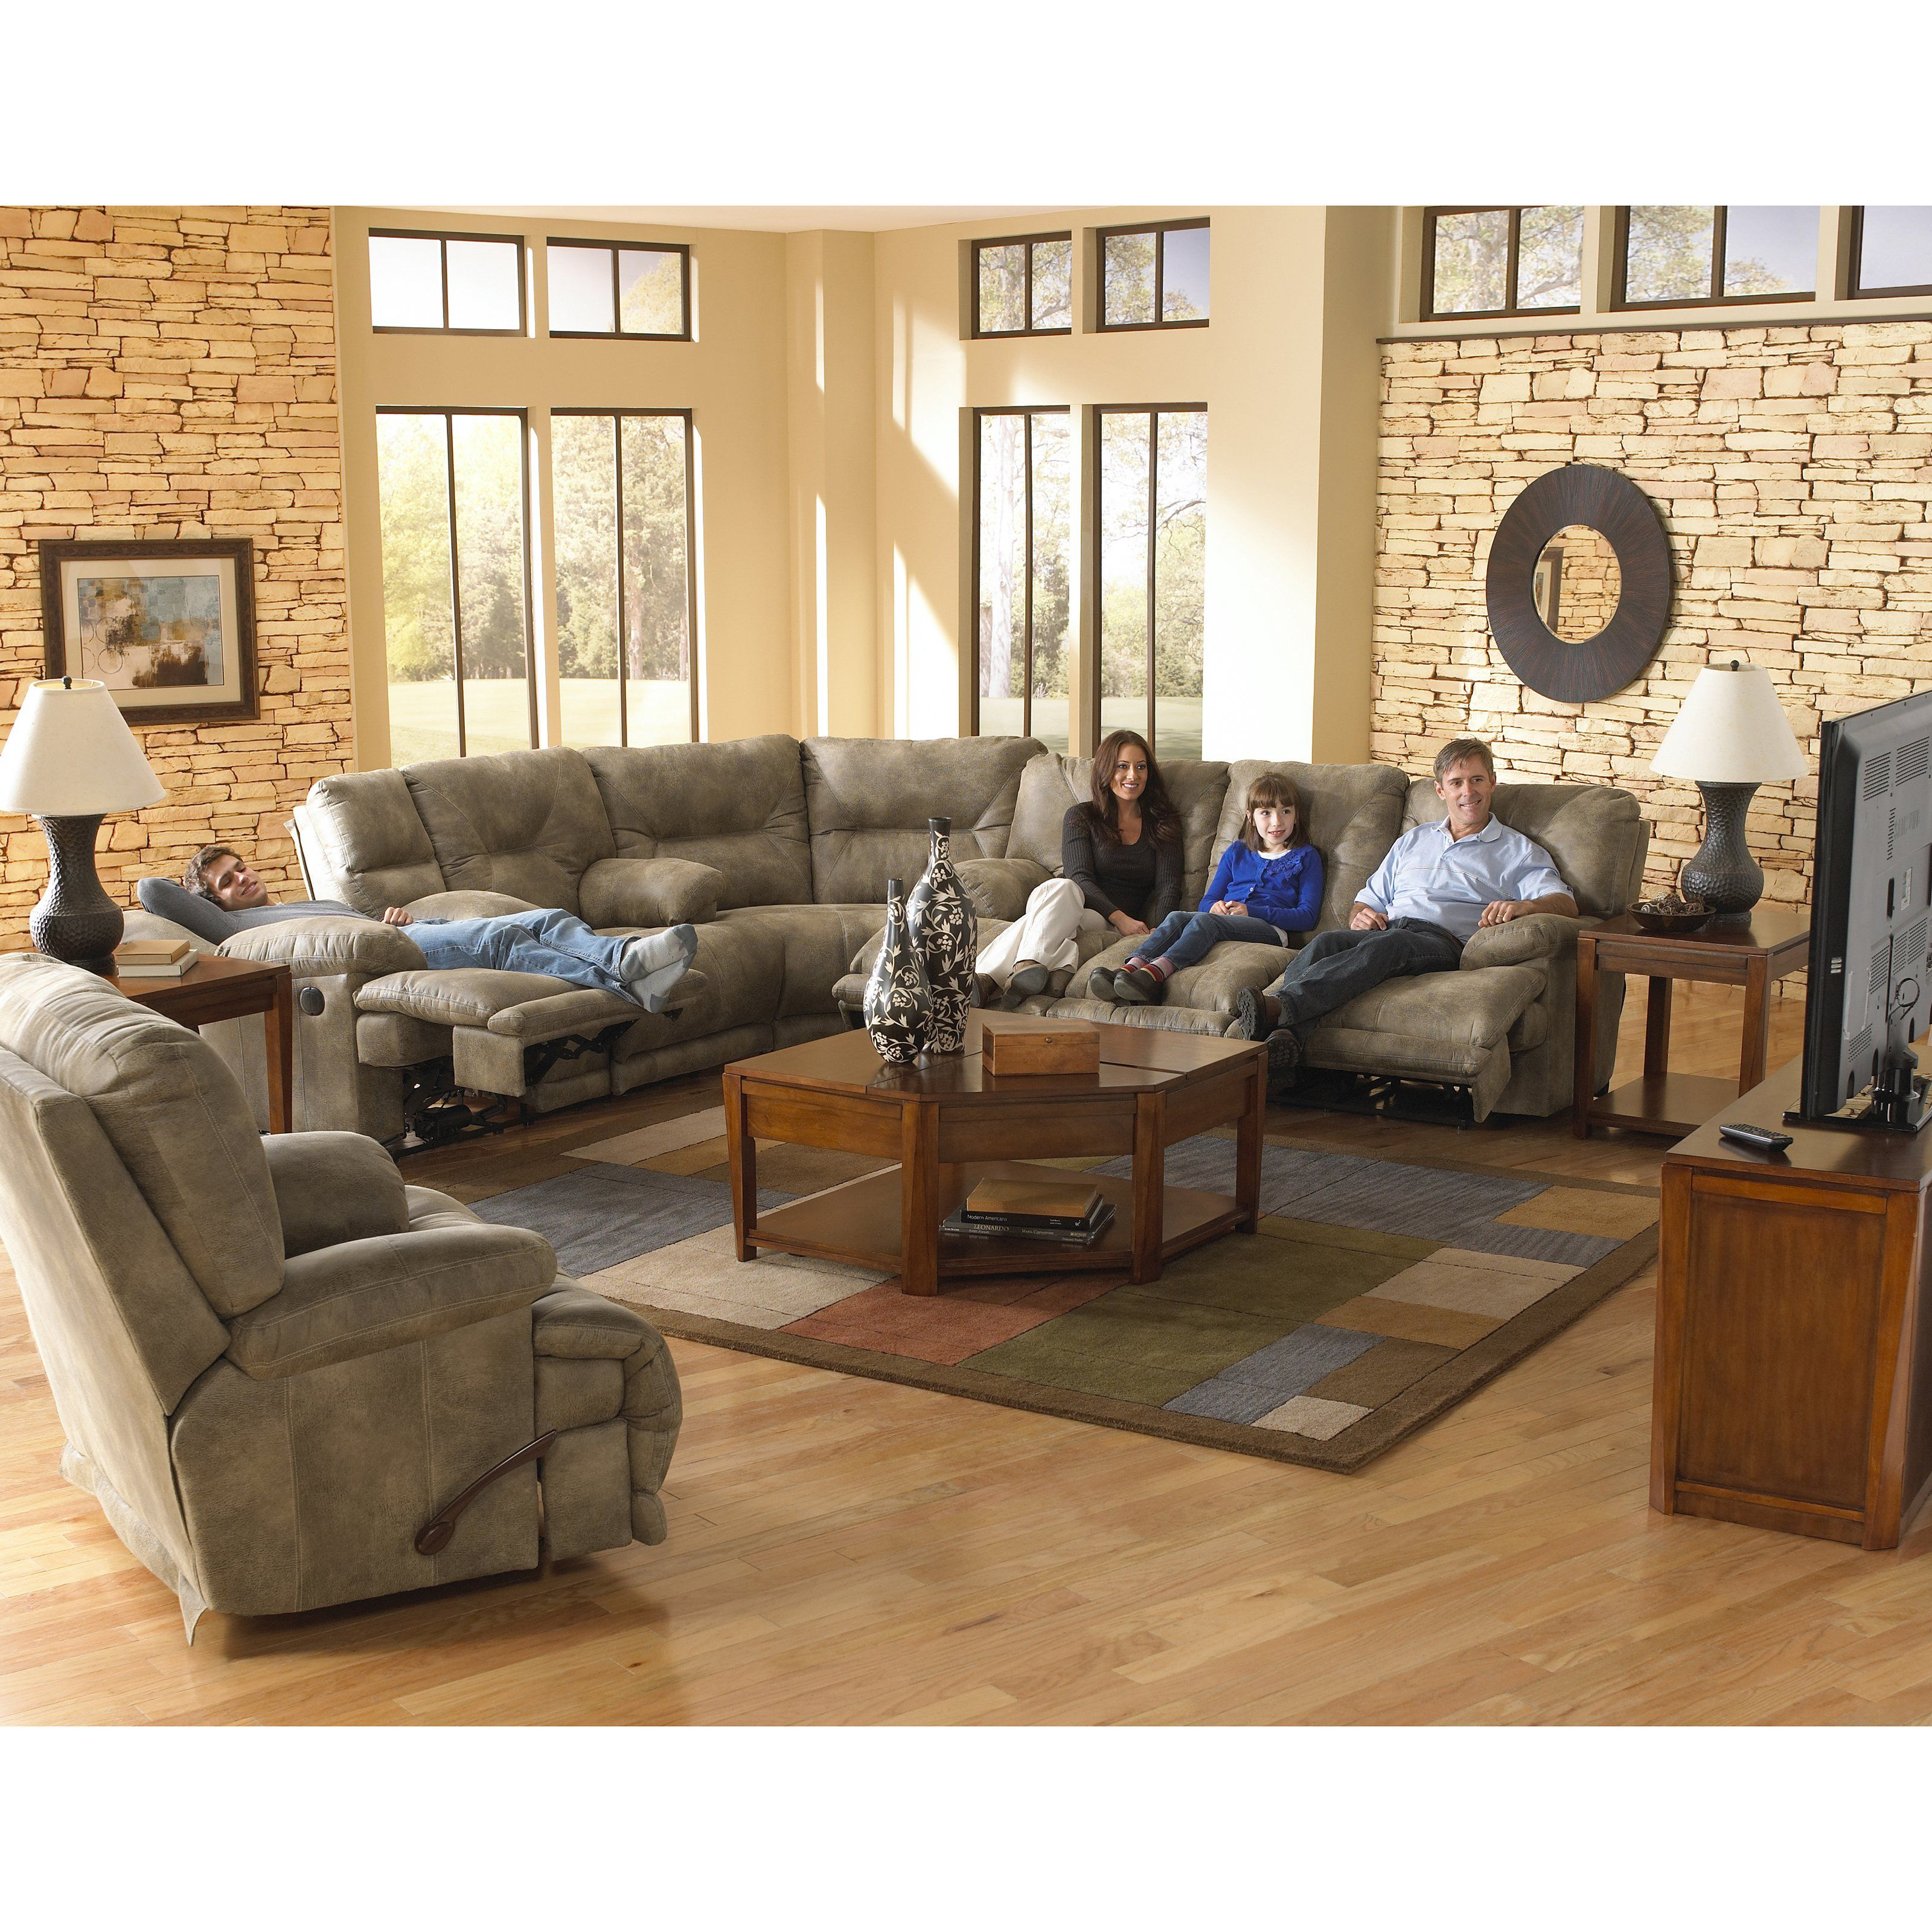 Catnapper Voyager Reclining Sectional Set Brandy